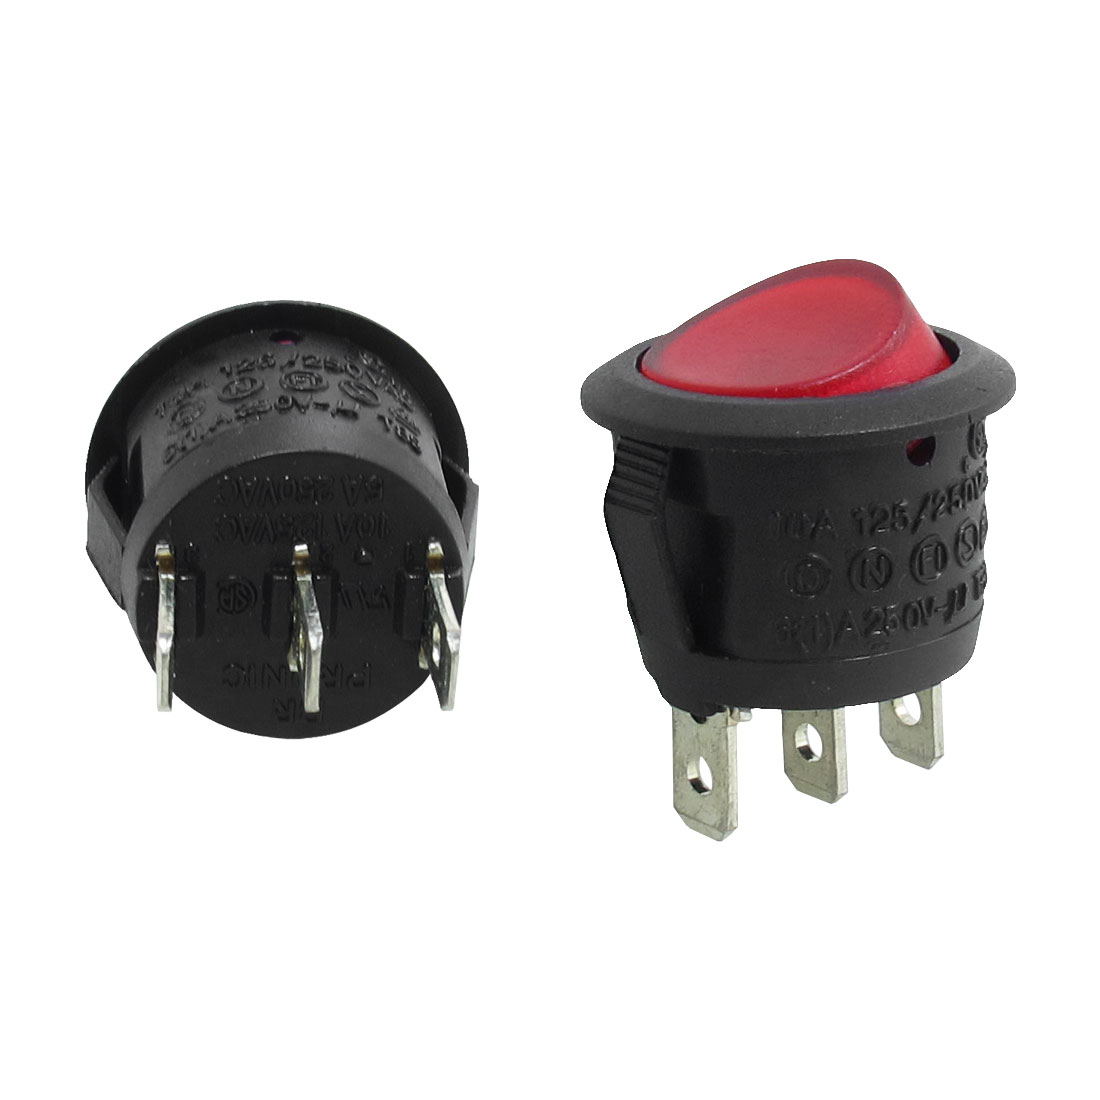 2 Pcs 3 Pins SPST On/Off Neon Light Round Rocker Switch